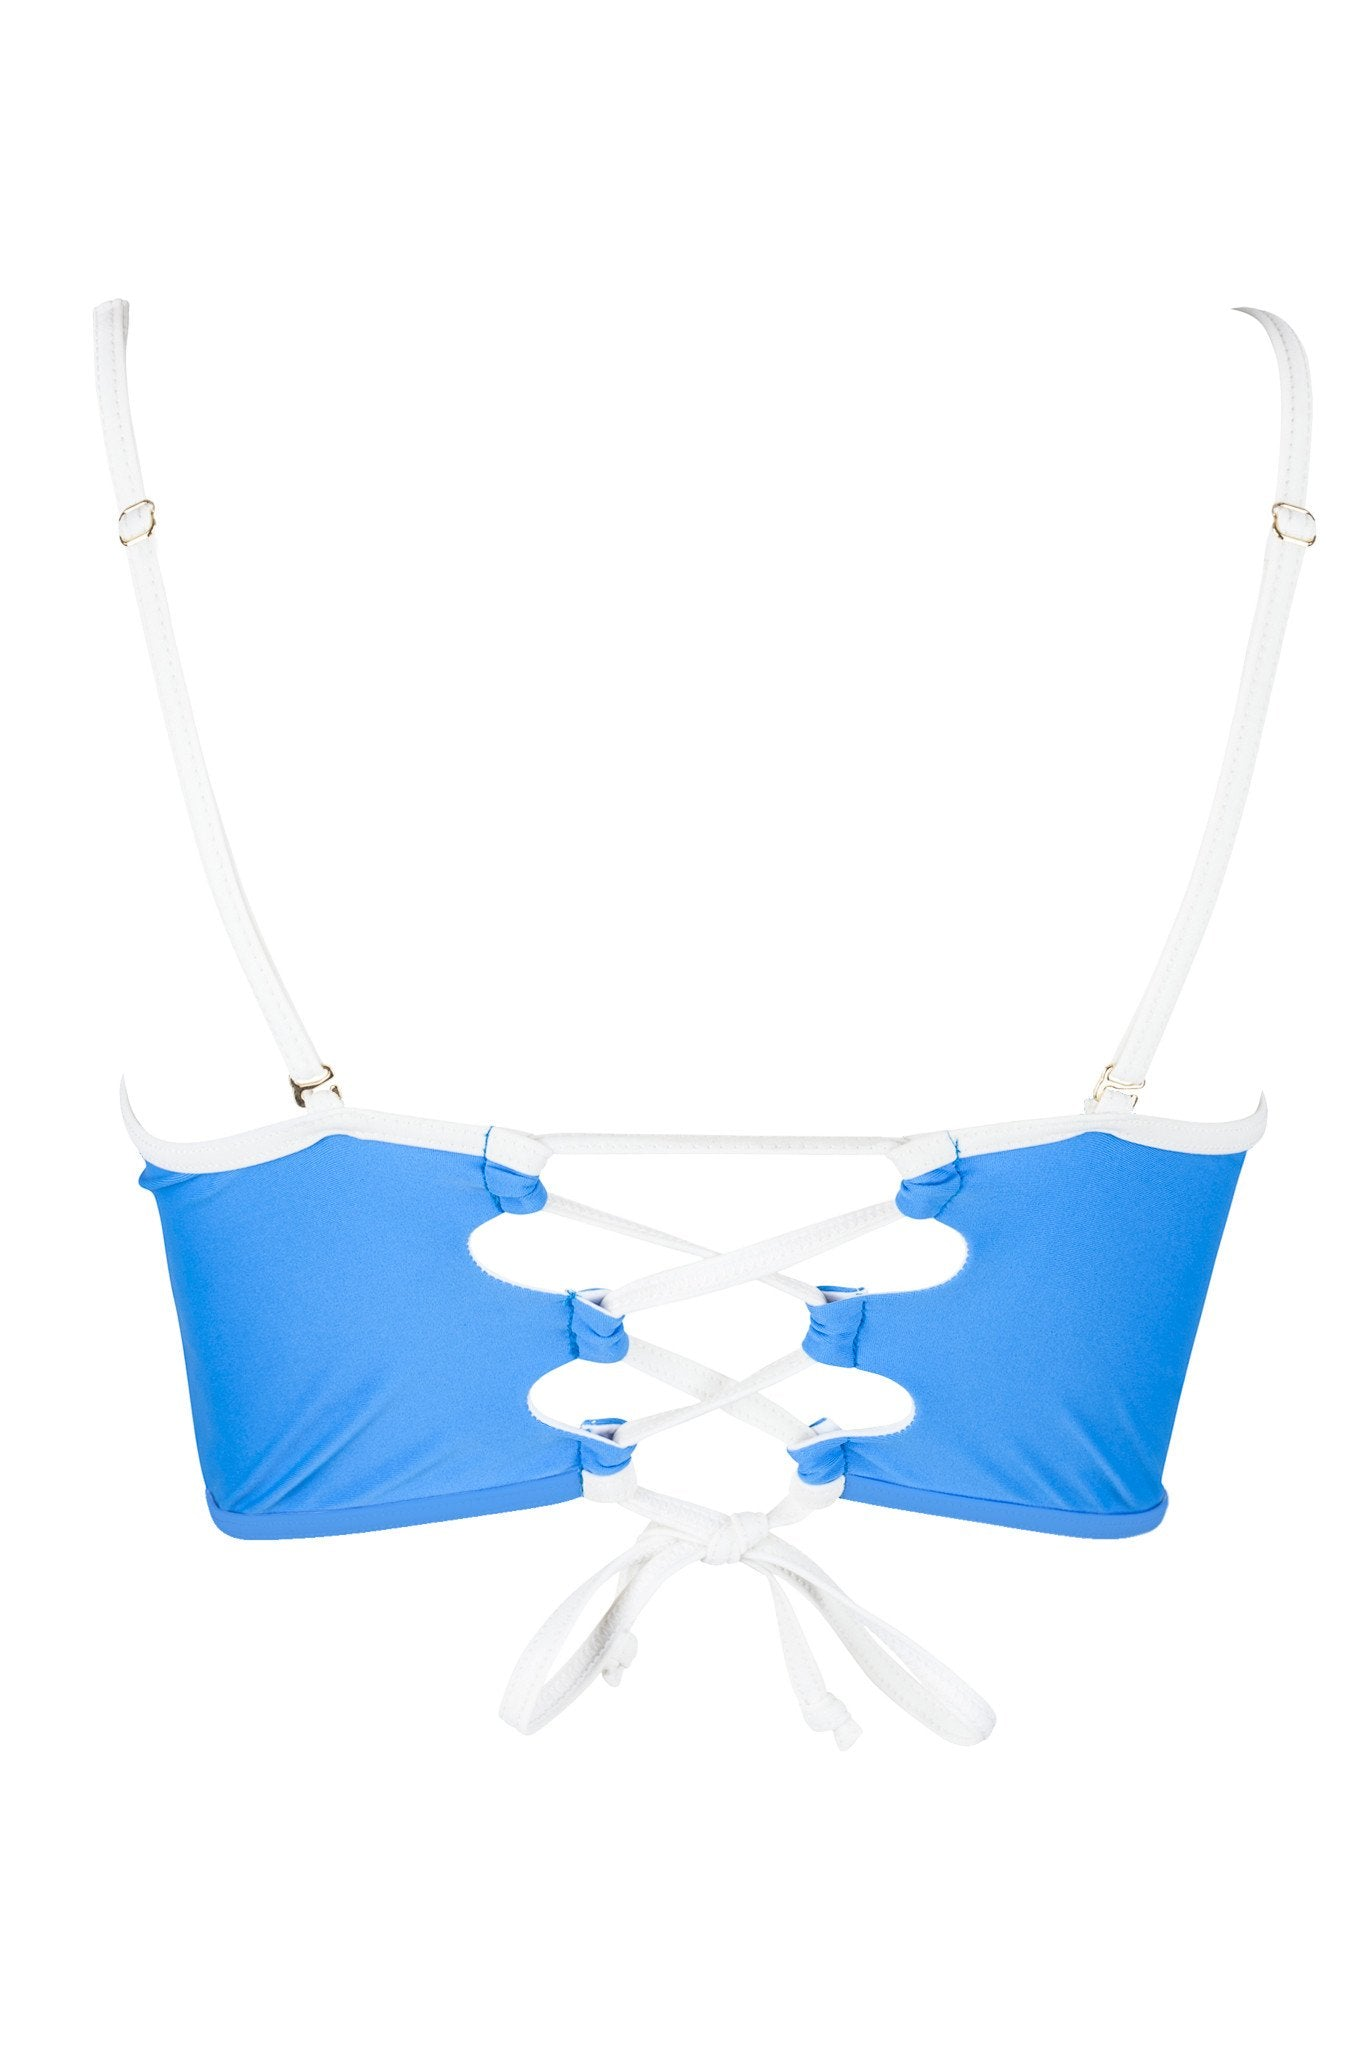 Midi Bra Top | Chaouen - Bikini Top by Mer Culture Swimwear Hong Kong